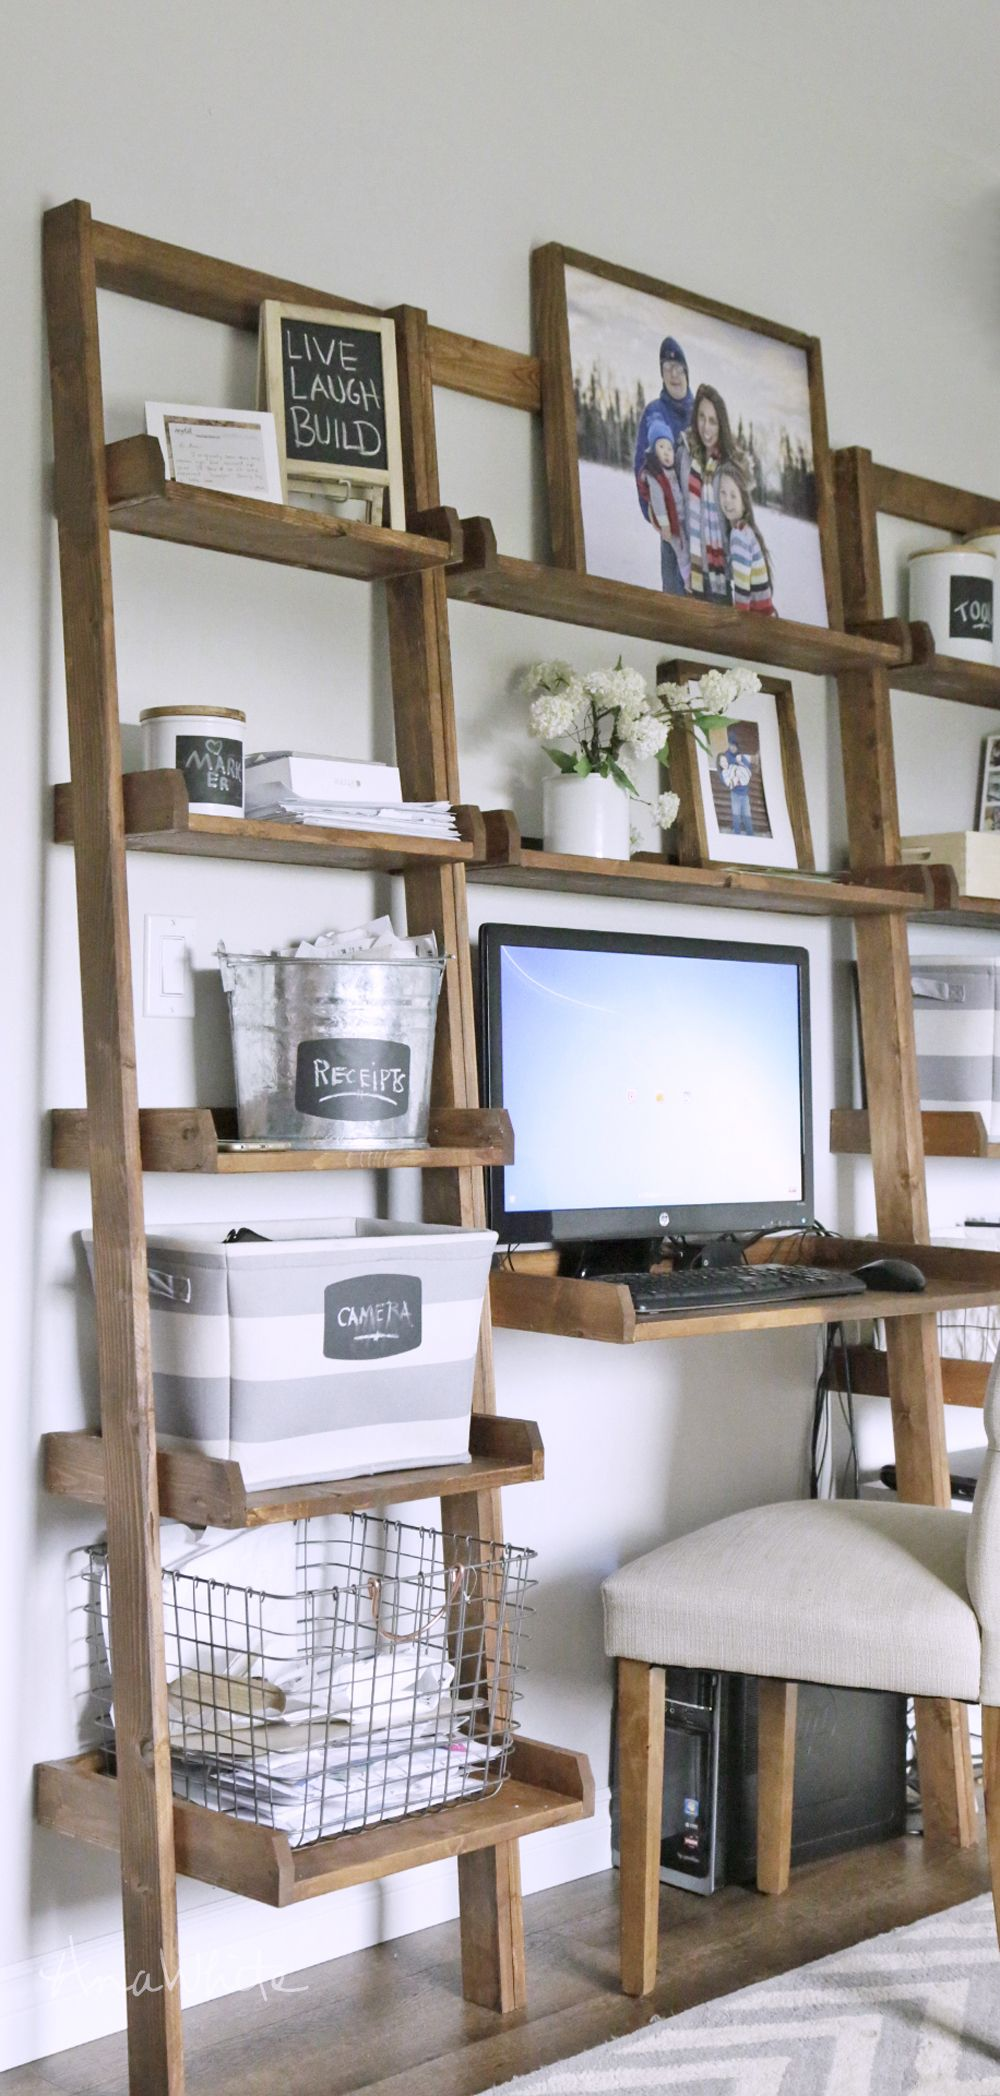 Ana White | Build a Leaning Ladder Wall Bookshelf | Free and Easy DIY Project and Furniture Plans